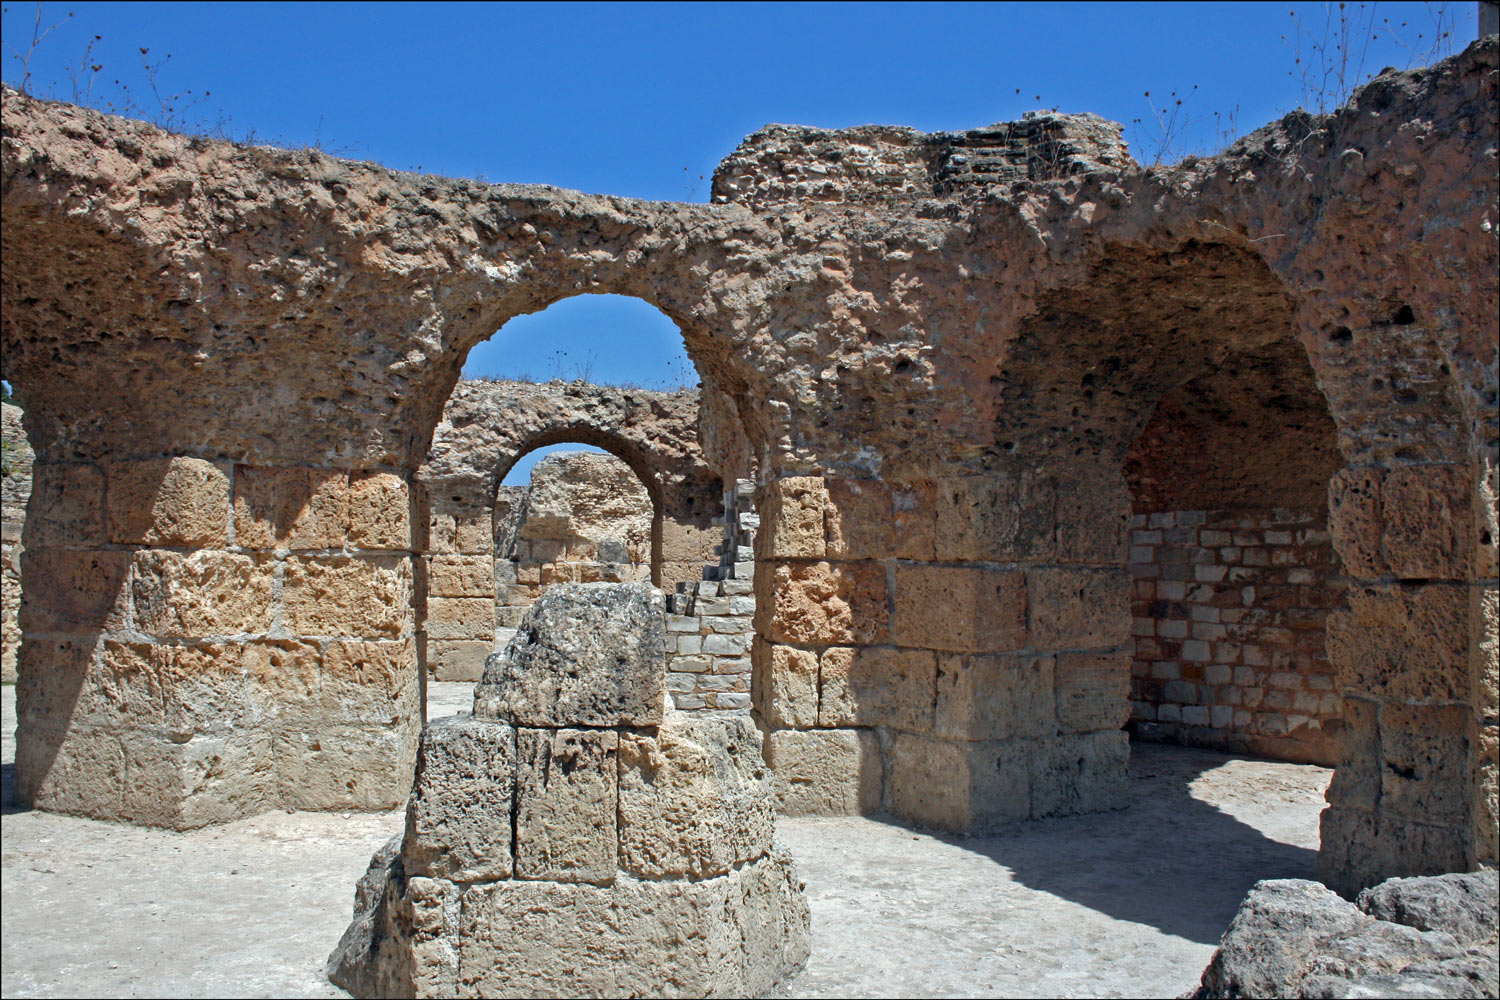 Arches in the Hypocaust - 2